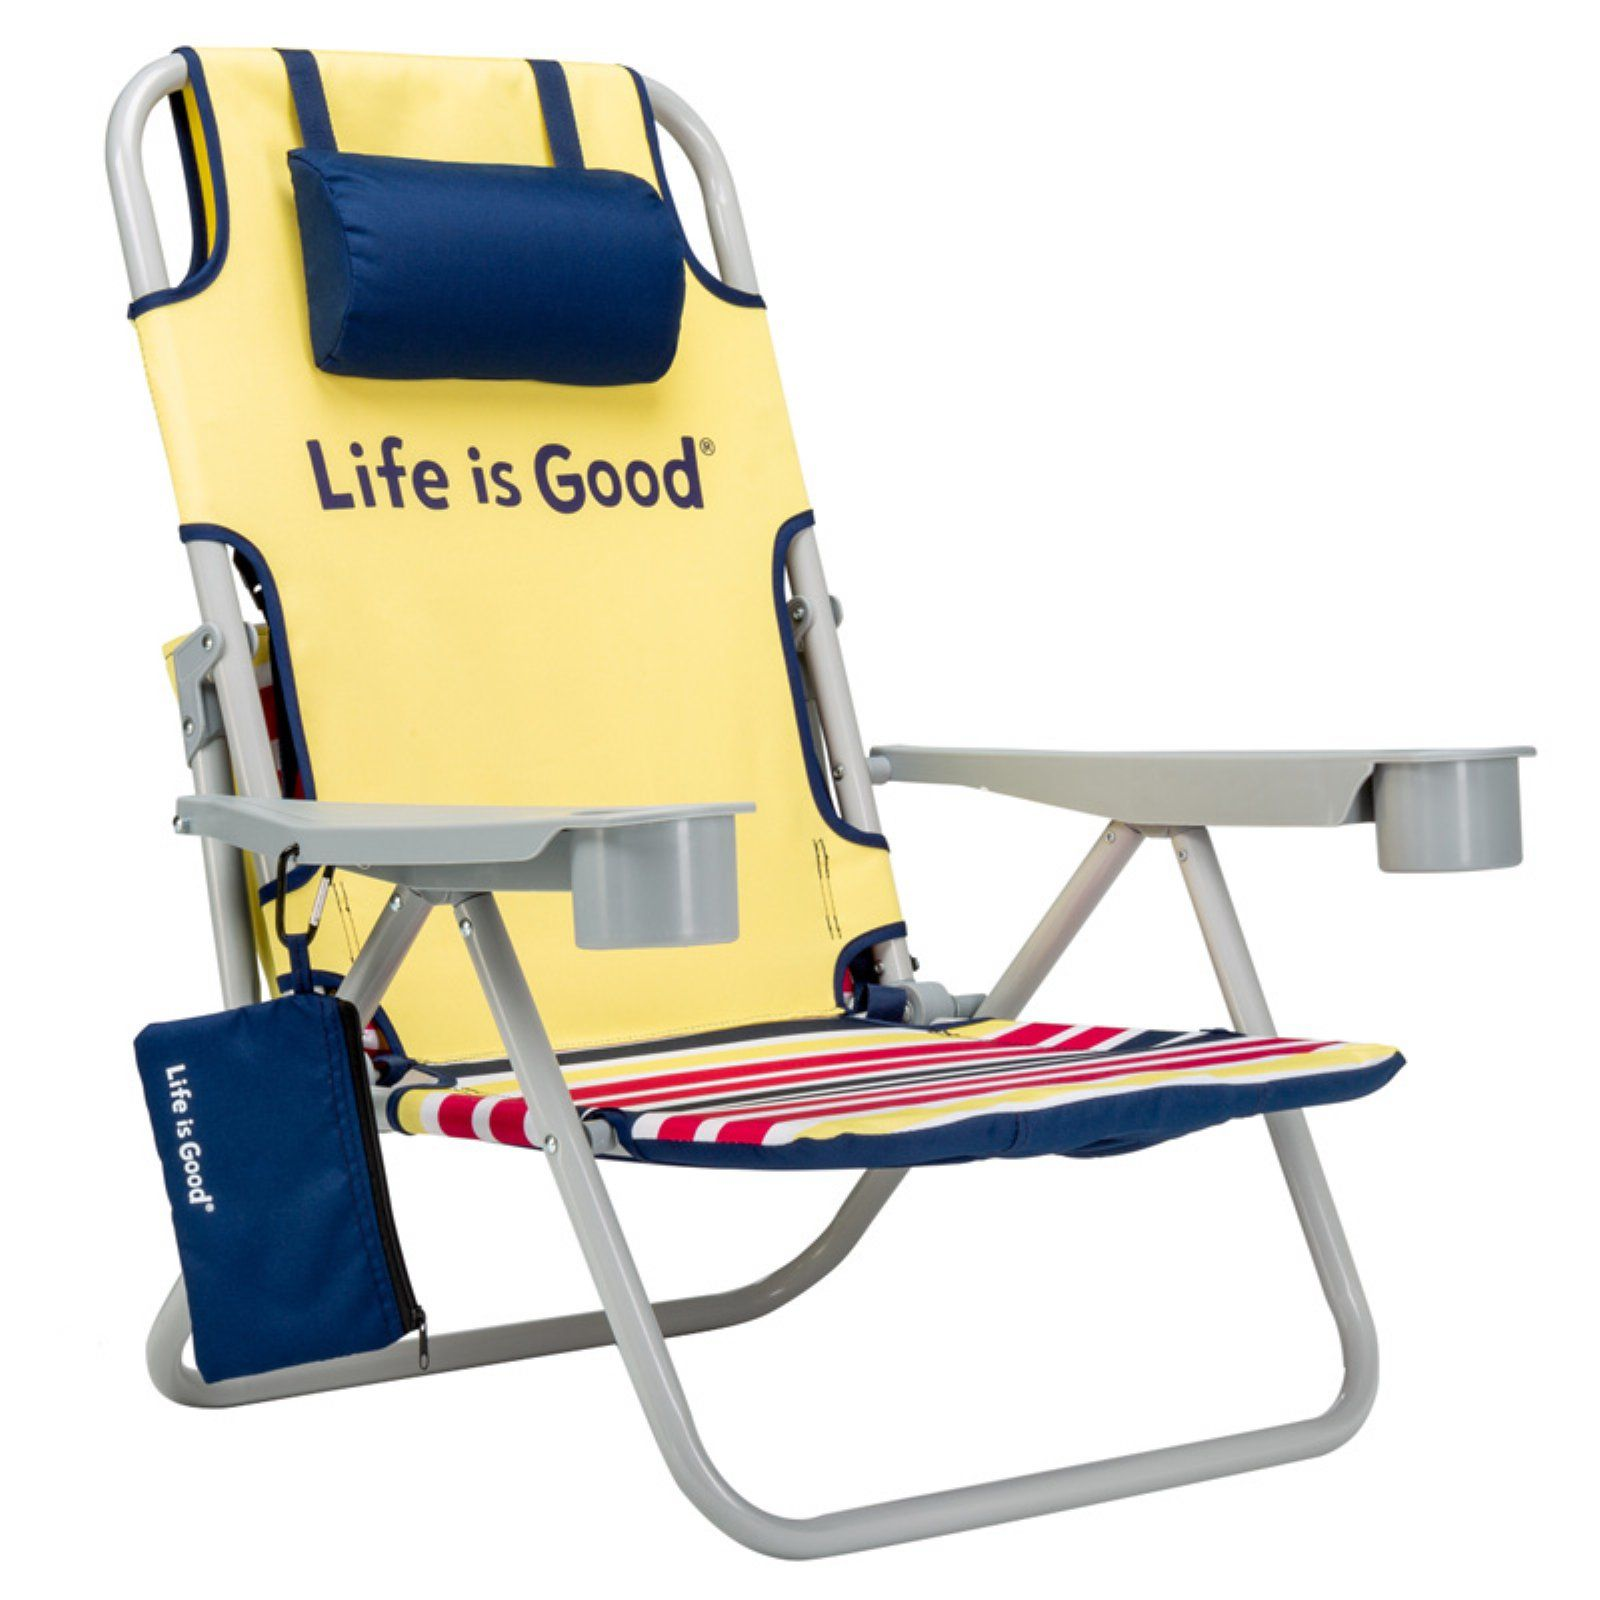 Magnificent Outdoor Life Is Good Yellow Daisy Beach Chair Products In Pabps2019 Chair Design Images Pabps2019Com